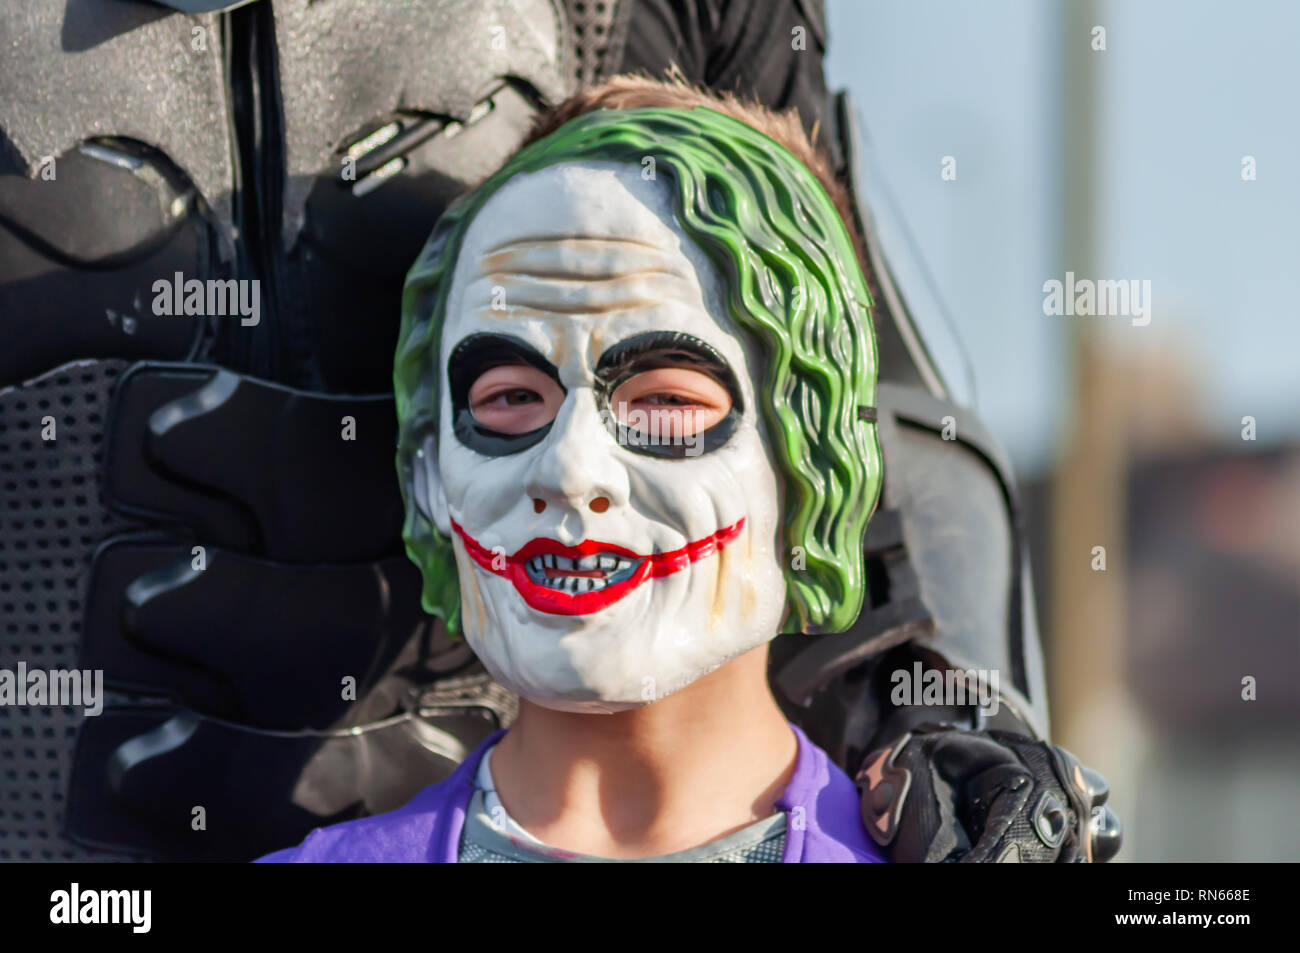 Edinburgh, Scotland, UK. 17th February, 2019. A cosplayer dressed as the fictional supervillain The Joker from the comic books published by DC Comics arriving on day three of the Capital Sci-Fi Con held at the Edinburgh Corn Exchange. Credit: Skully/Alamy Live News - Stock Image